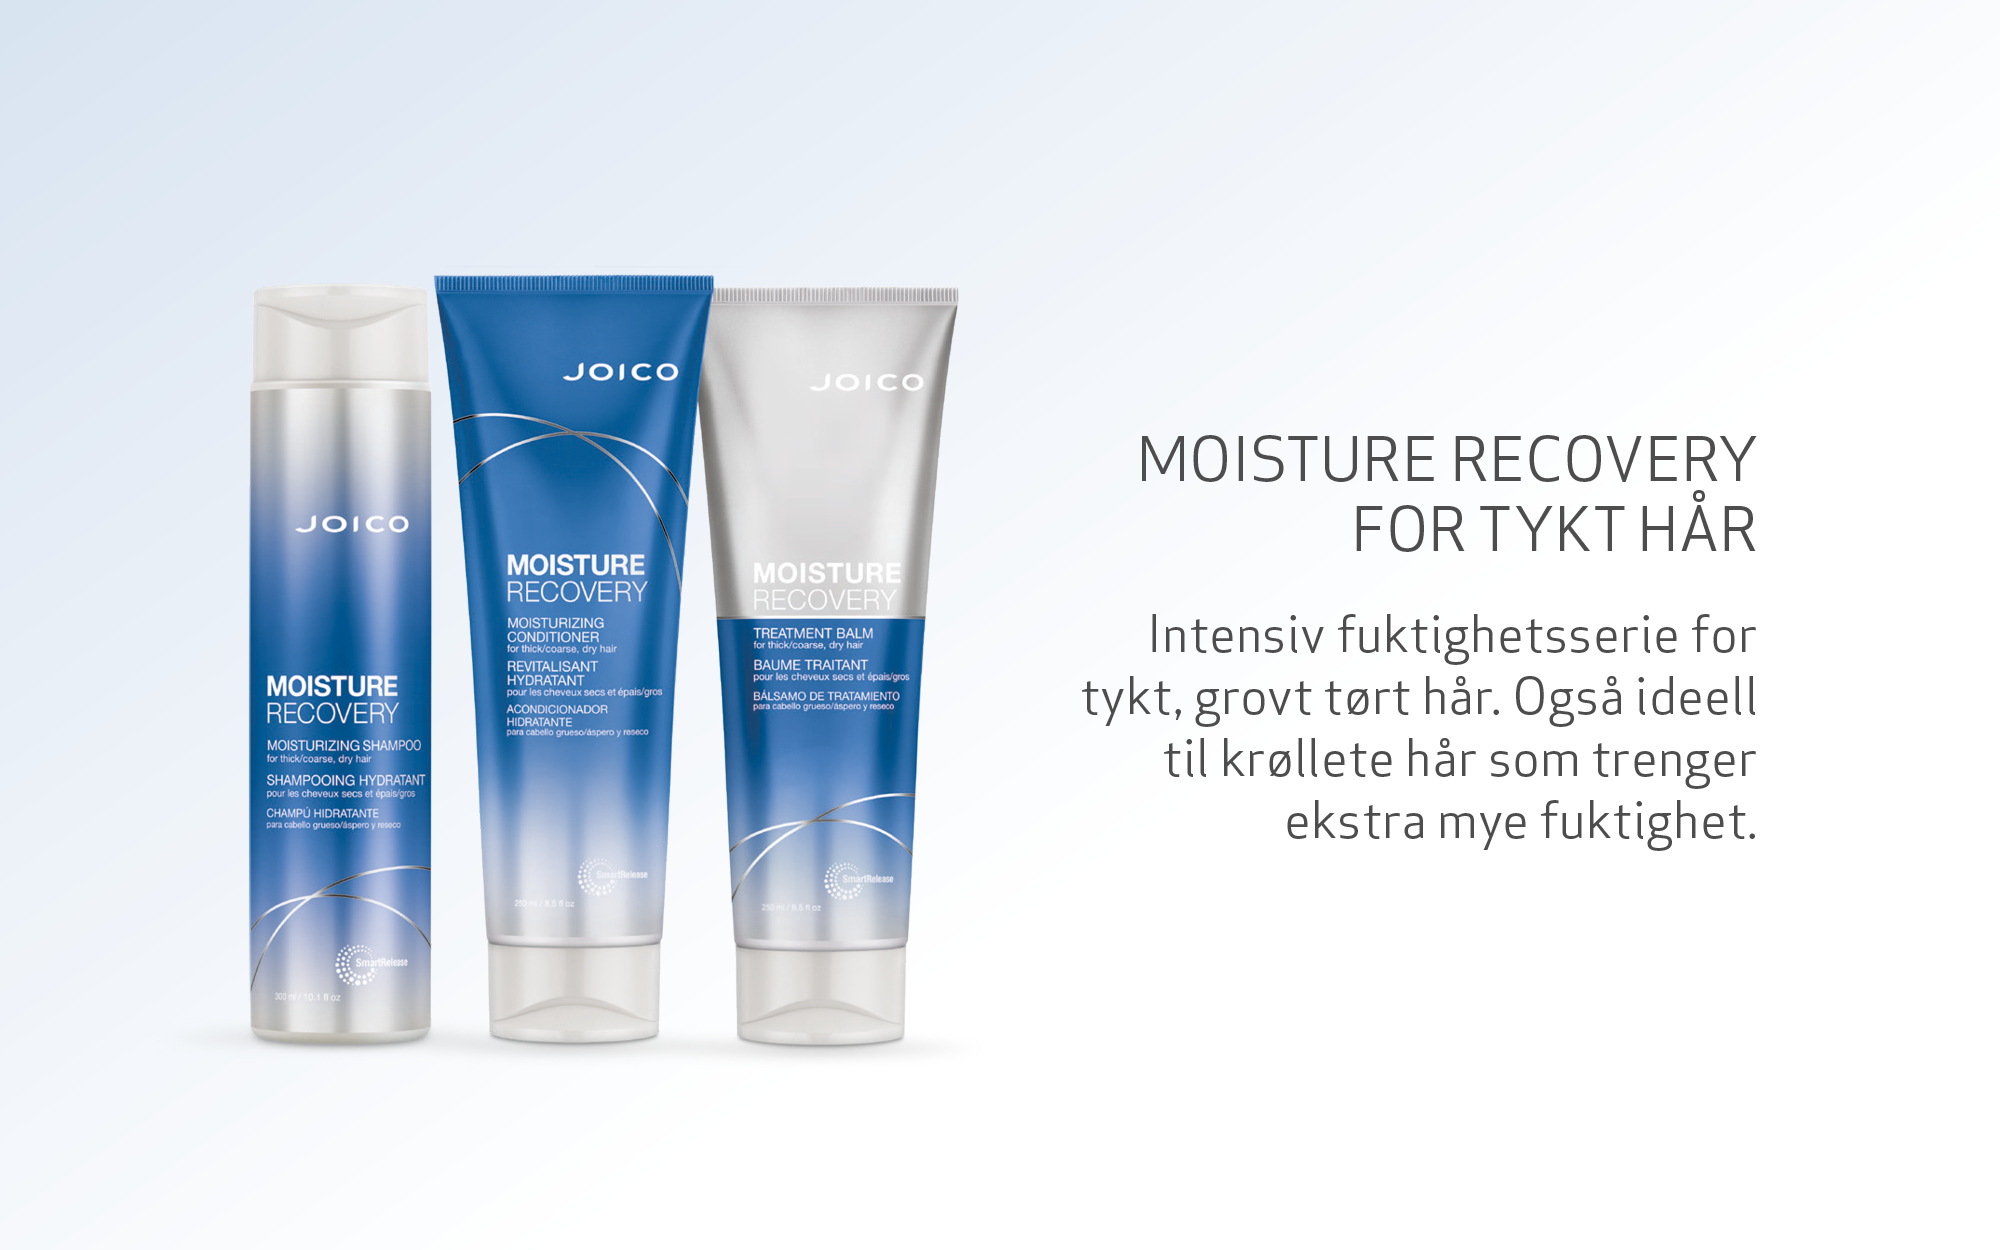 Joico Moisture Recovery products